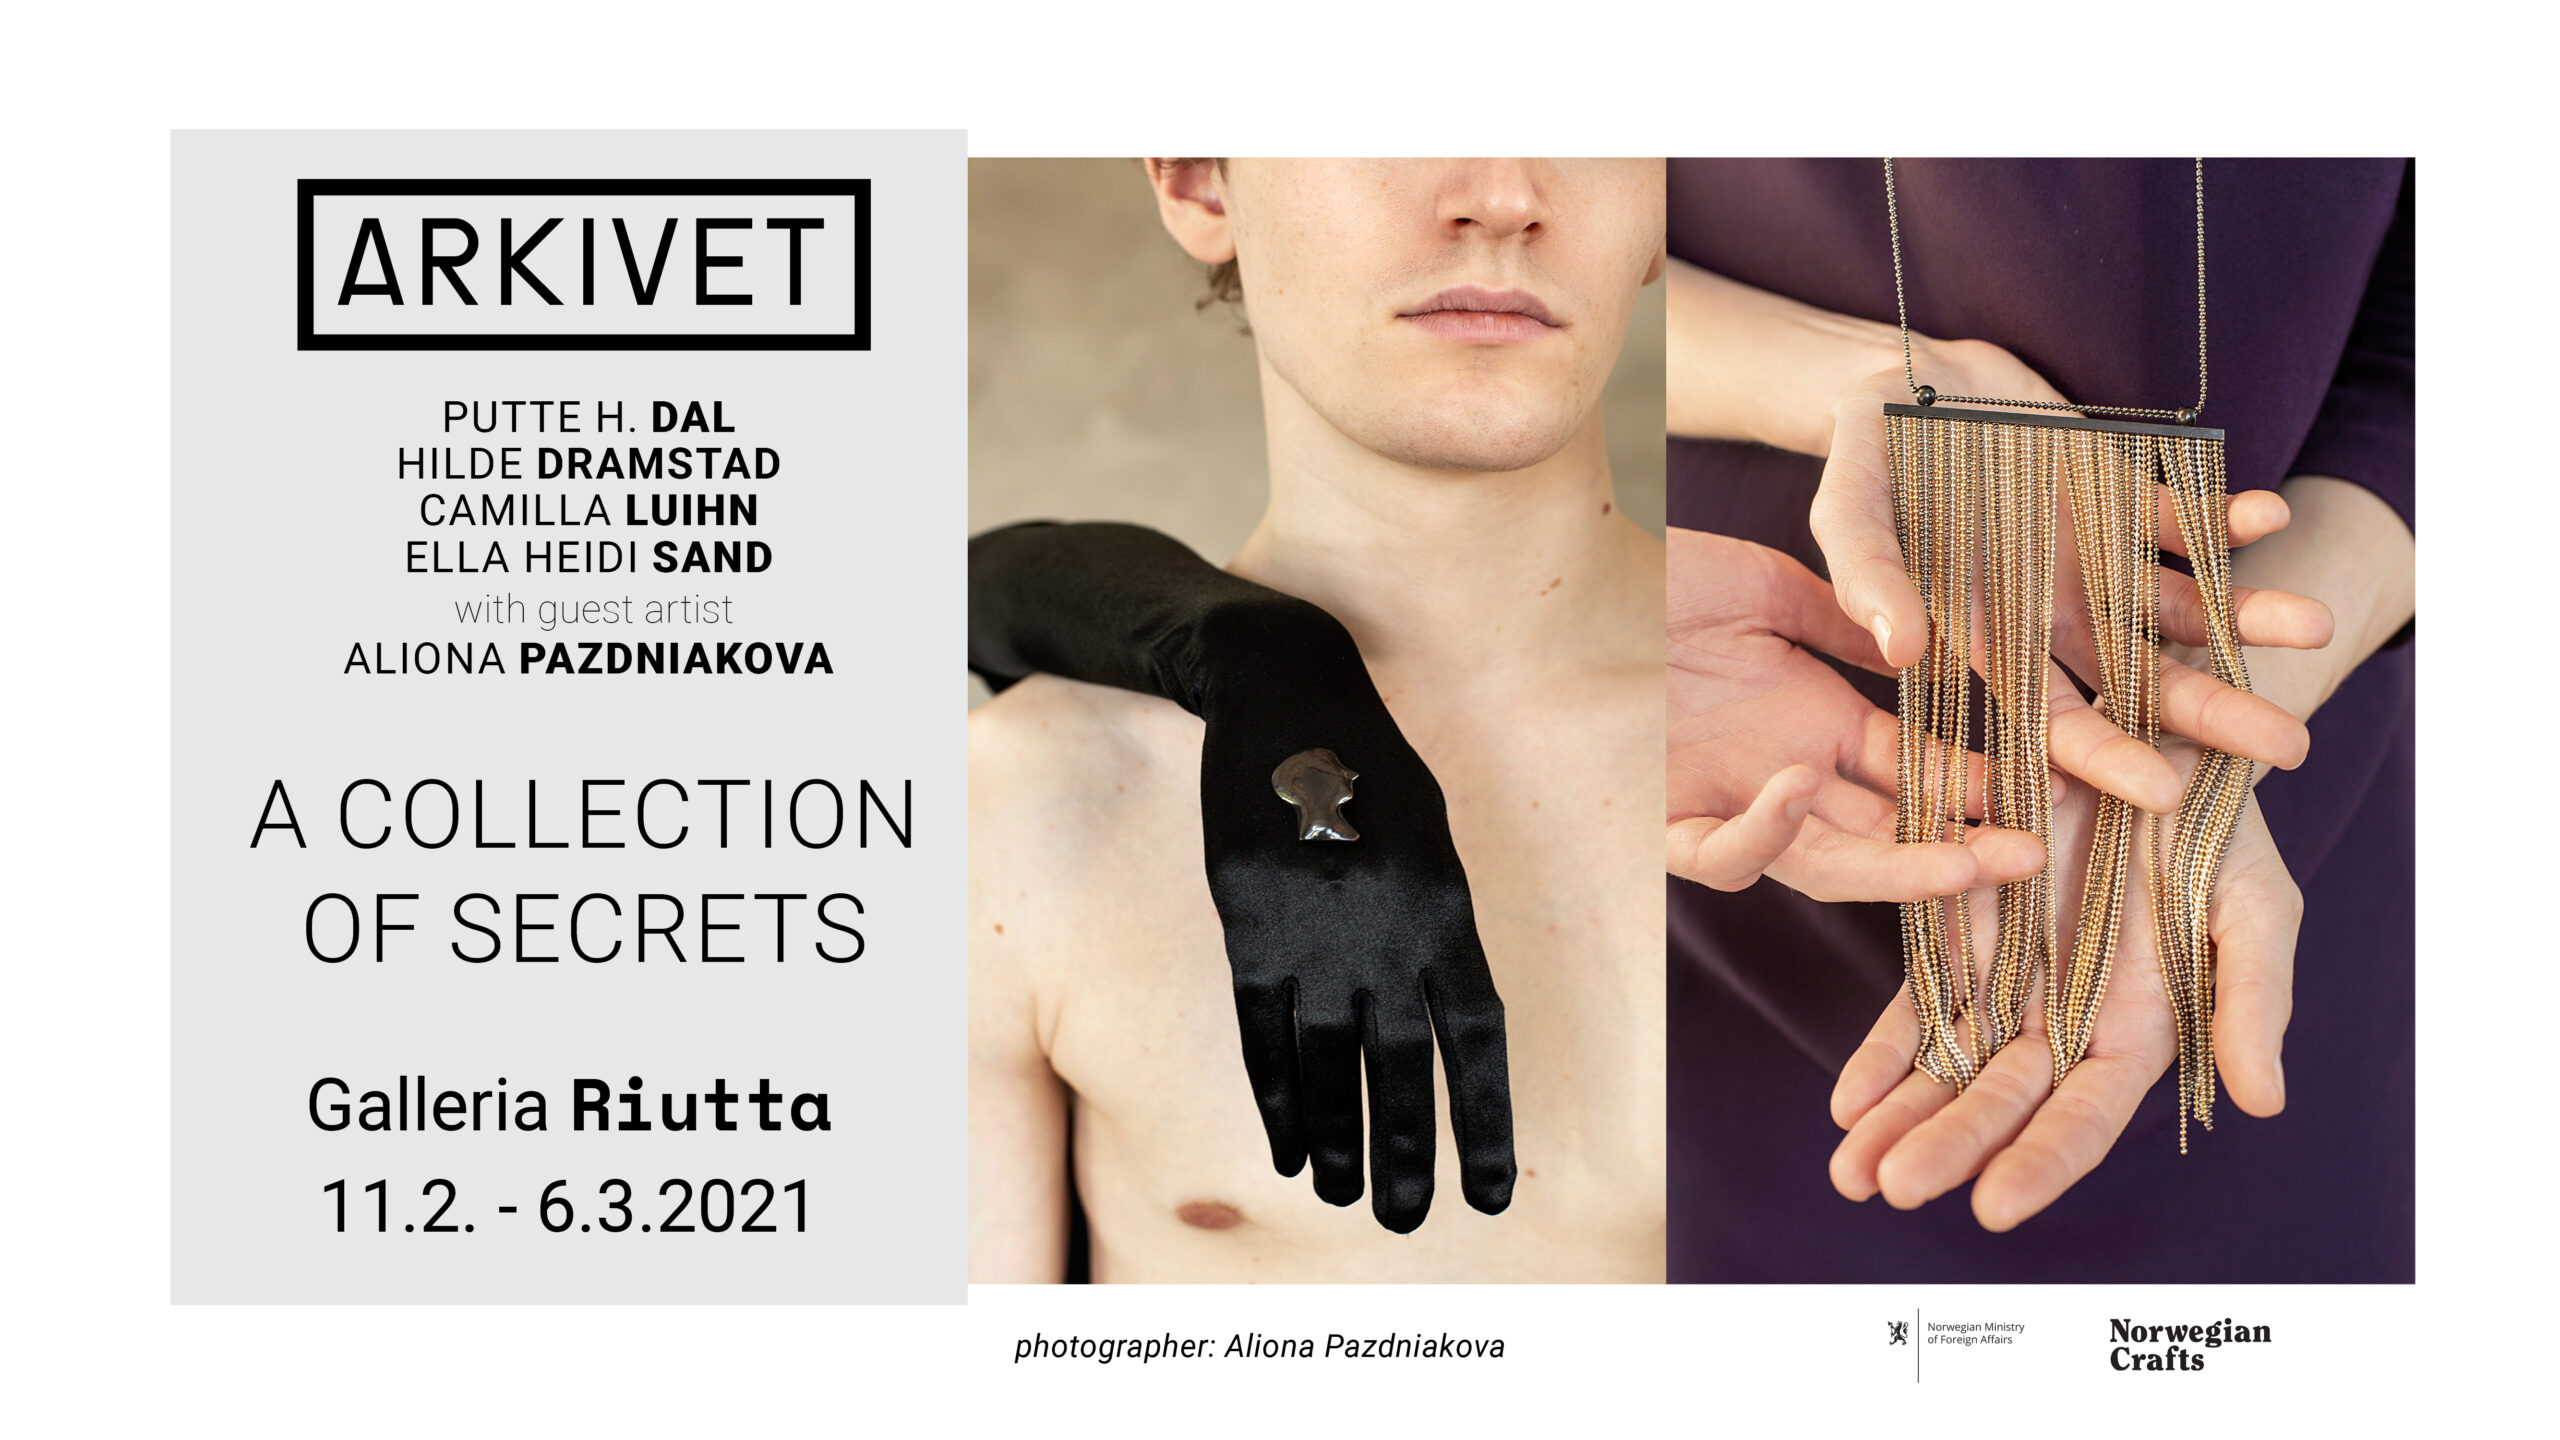 RIUTTA  – ARKIVET — a Collection of Secrets 11.2.2021-6.3.2021